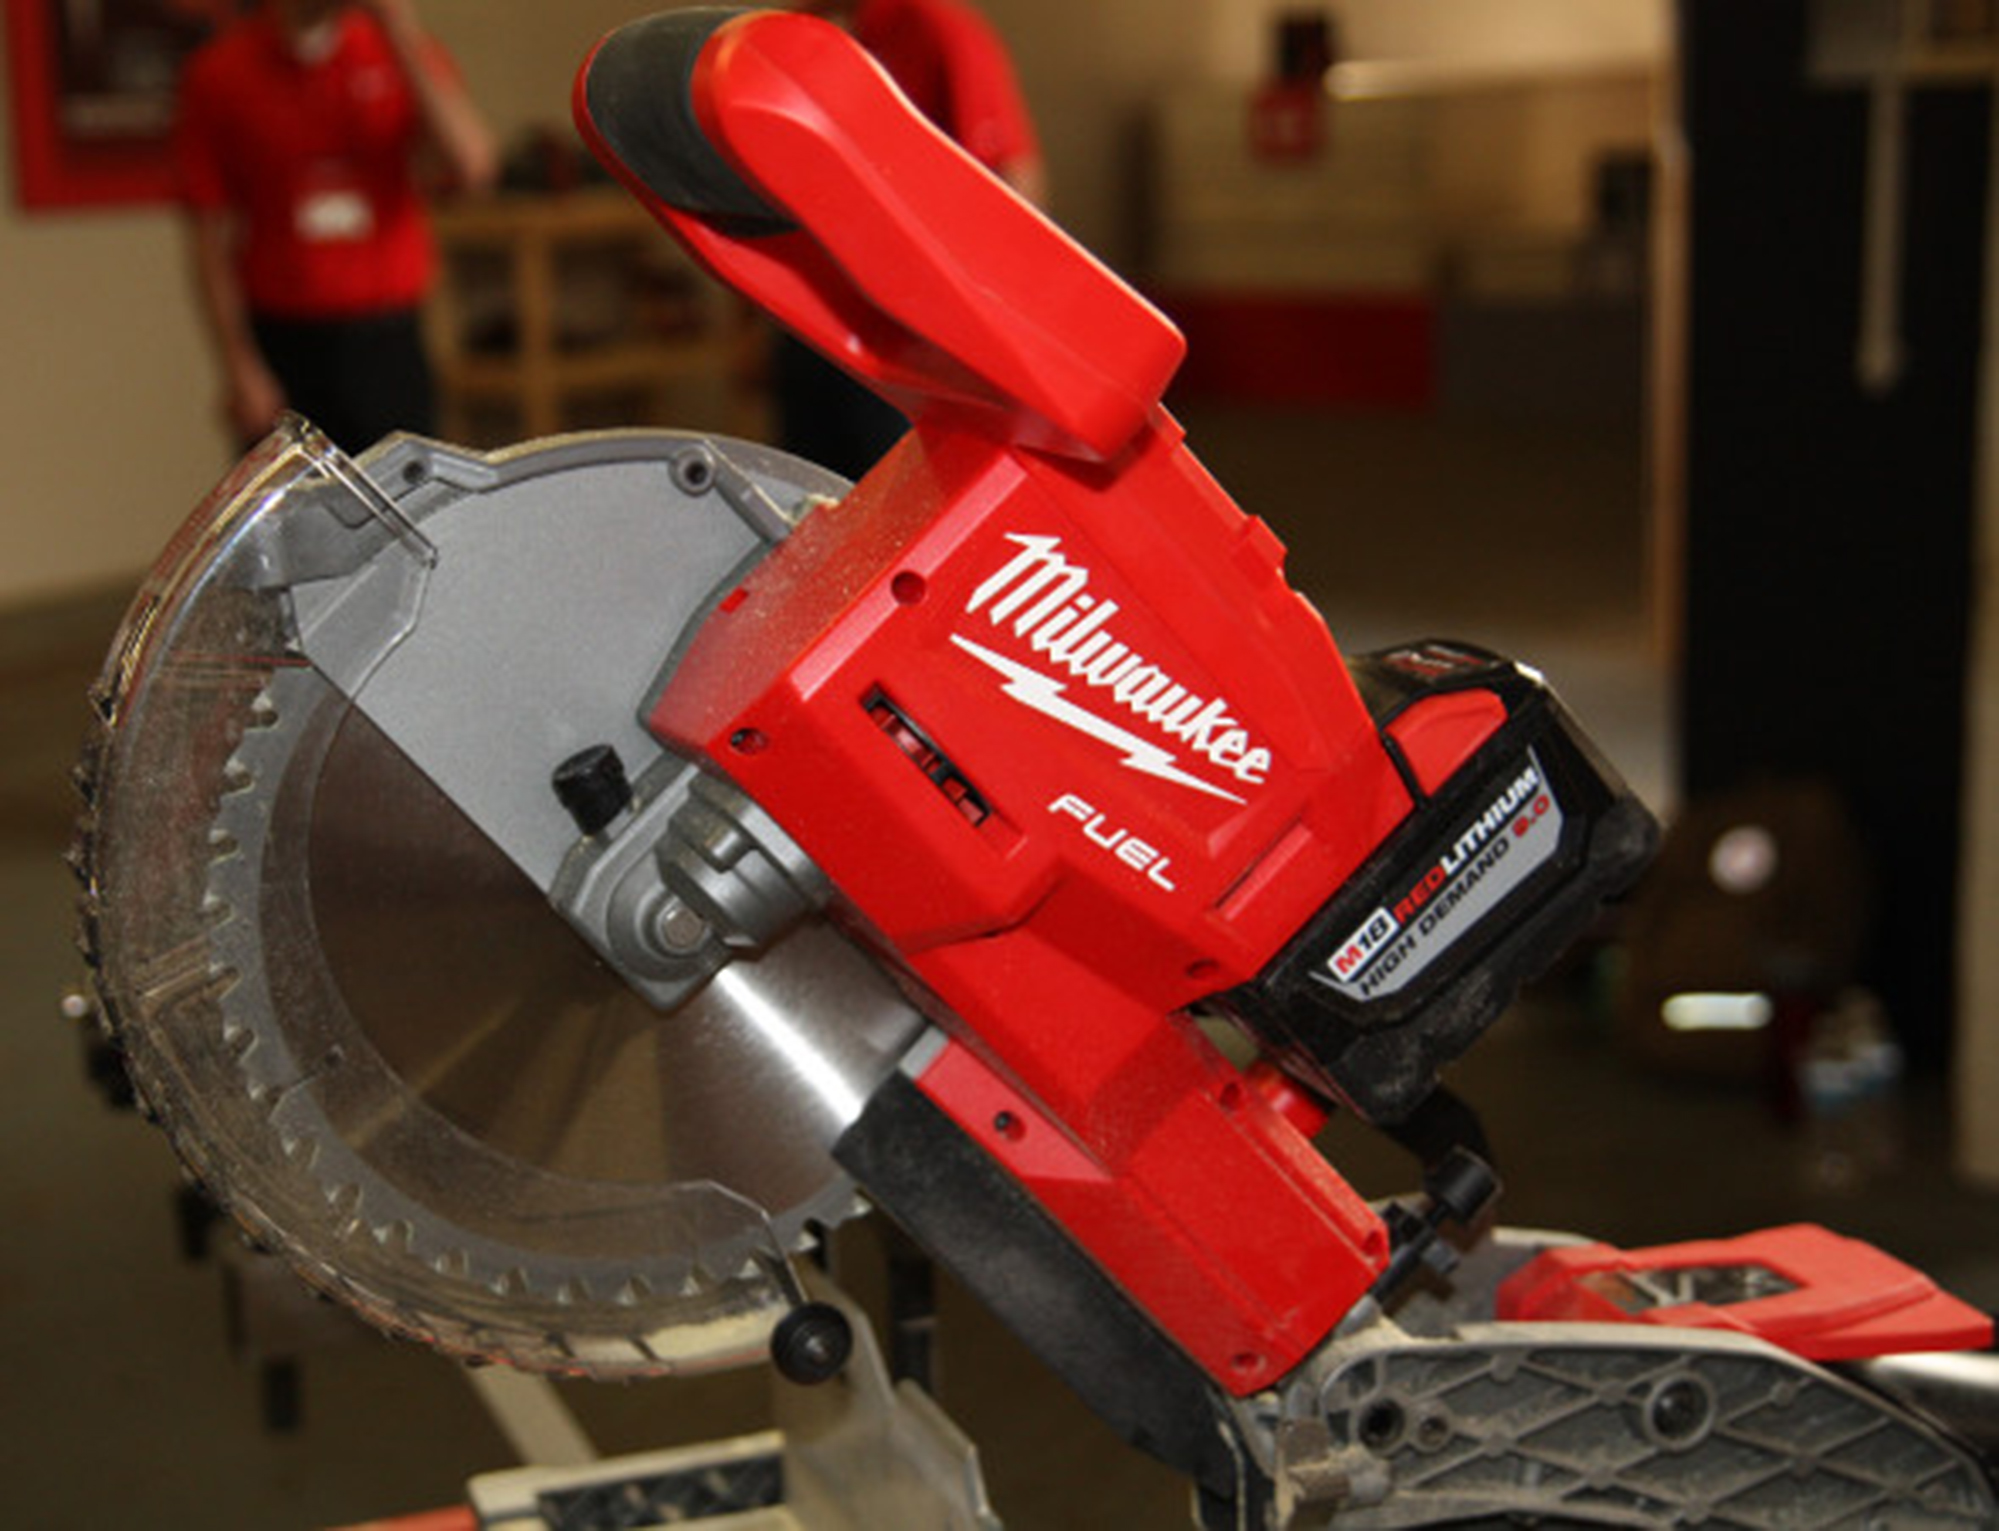 The World S First Cordless 10 Inch Sliding Compound Miter